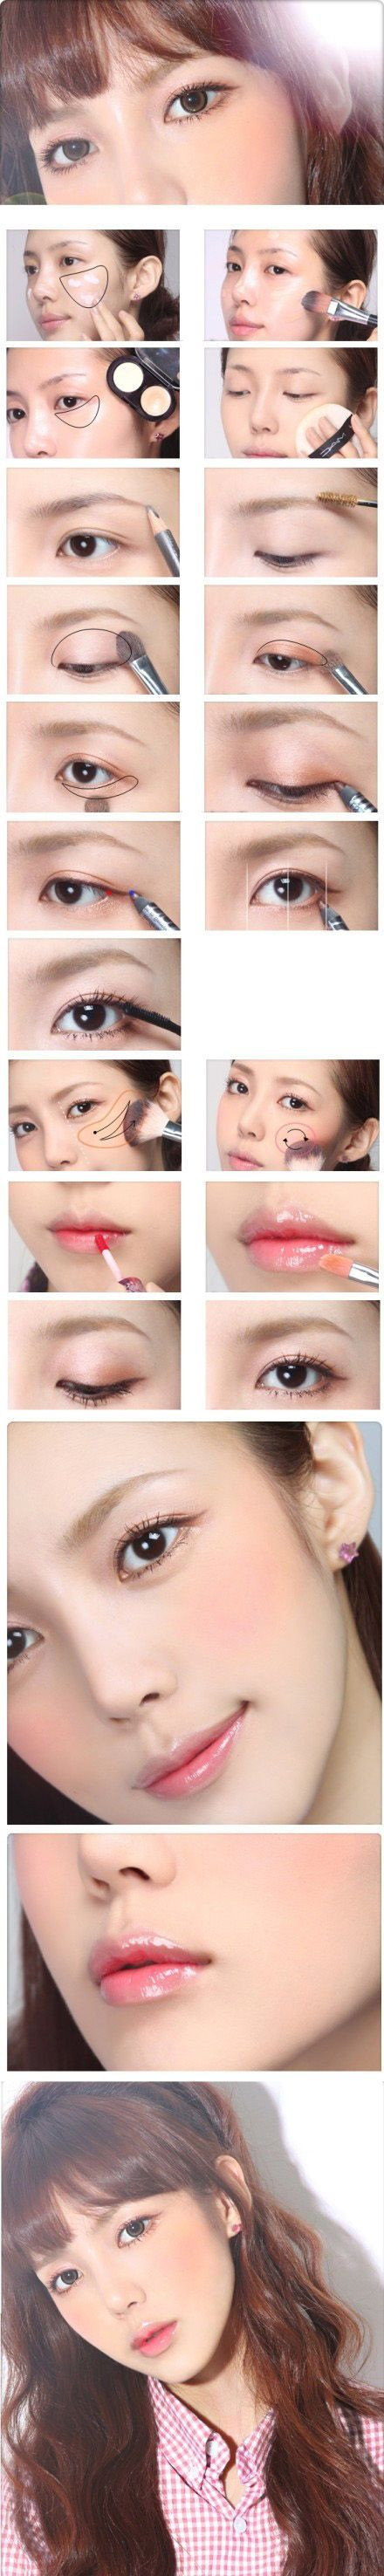 Makeup pictorial - #Korean #makeup #pictorial